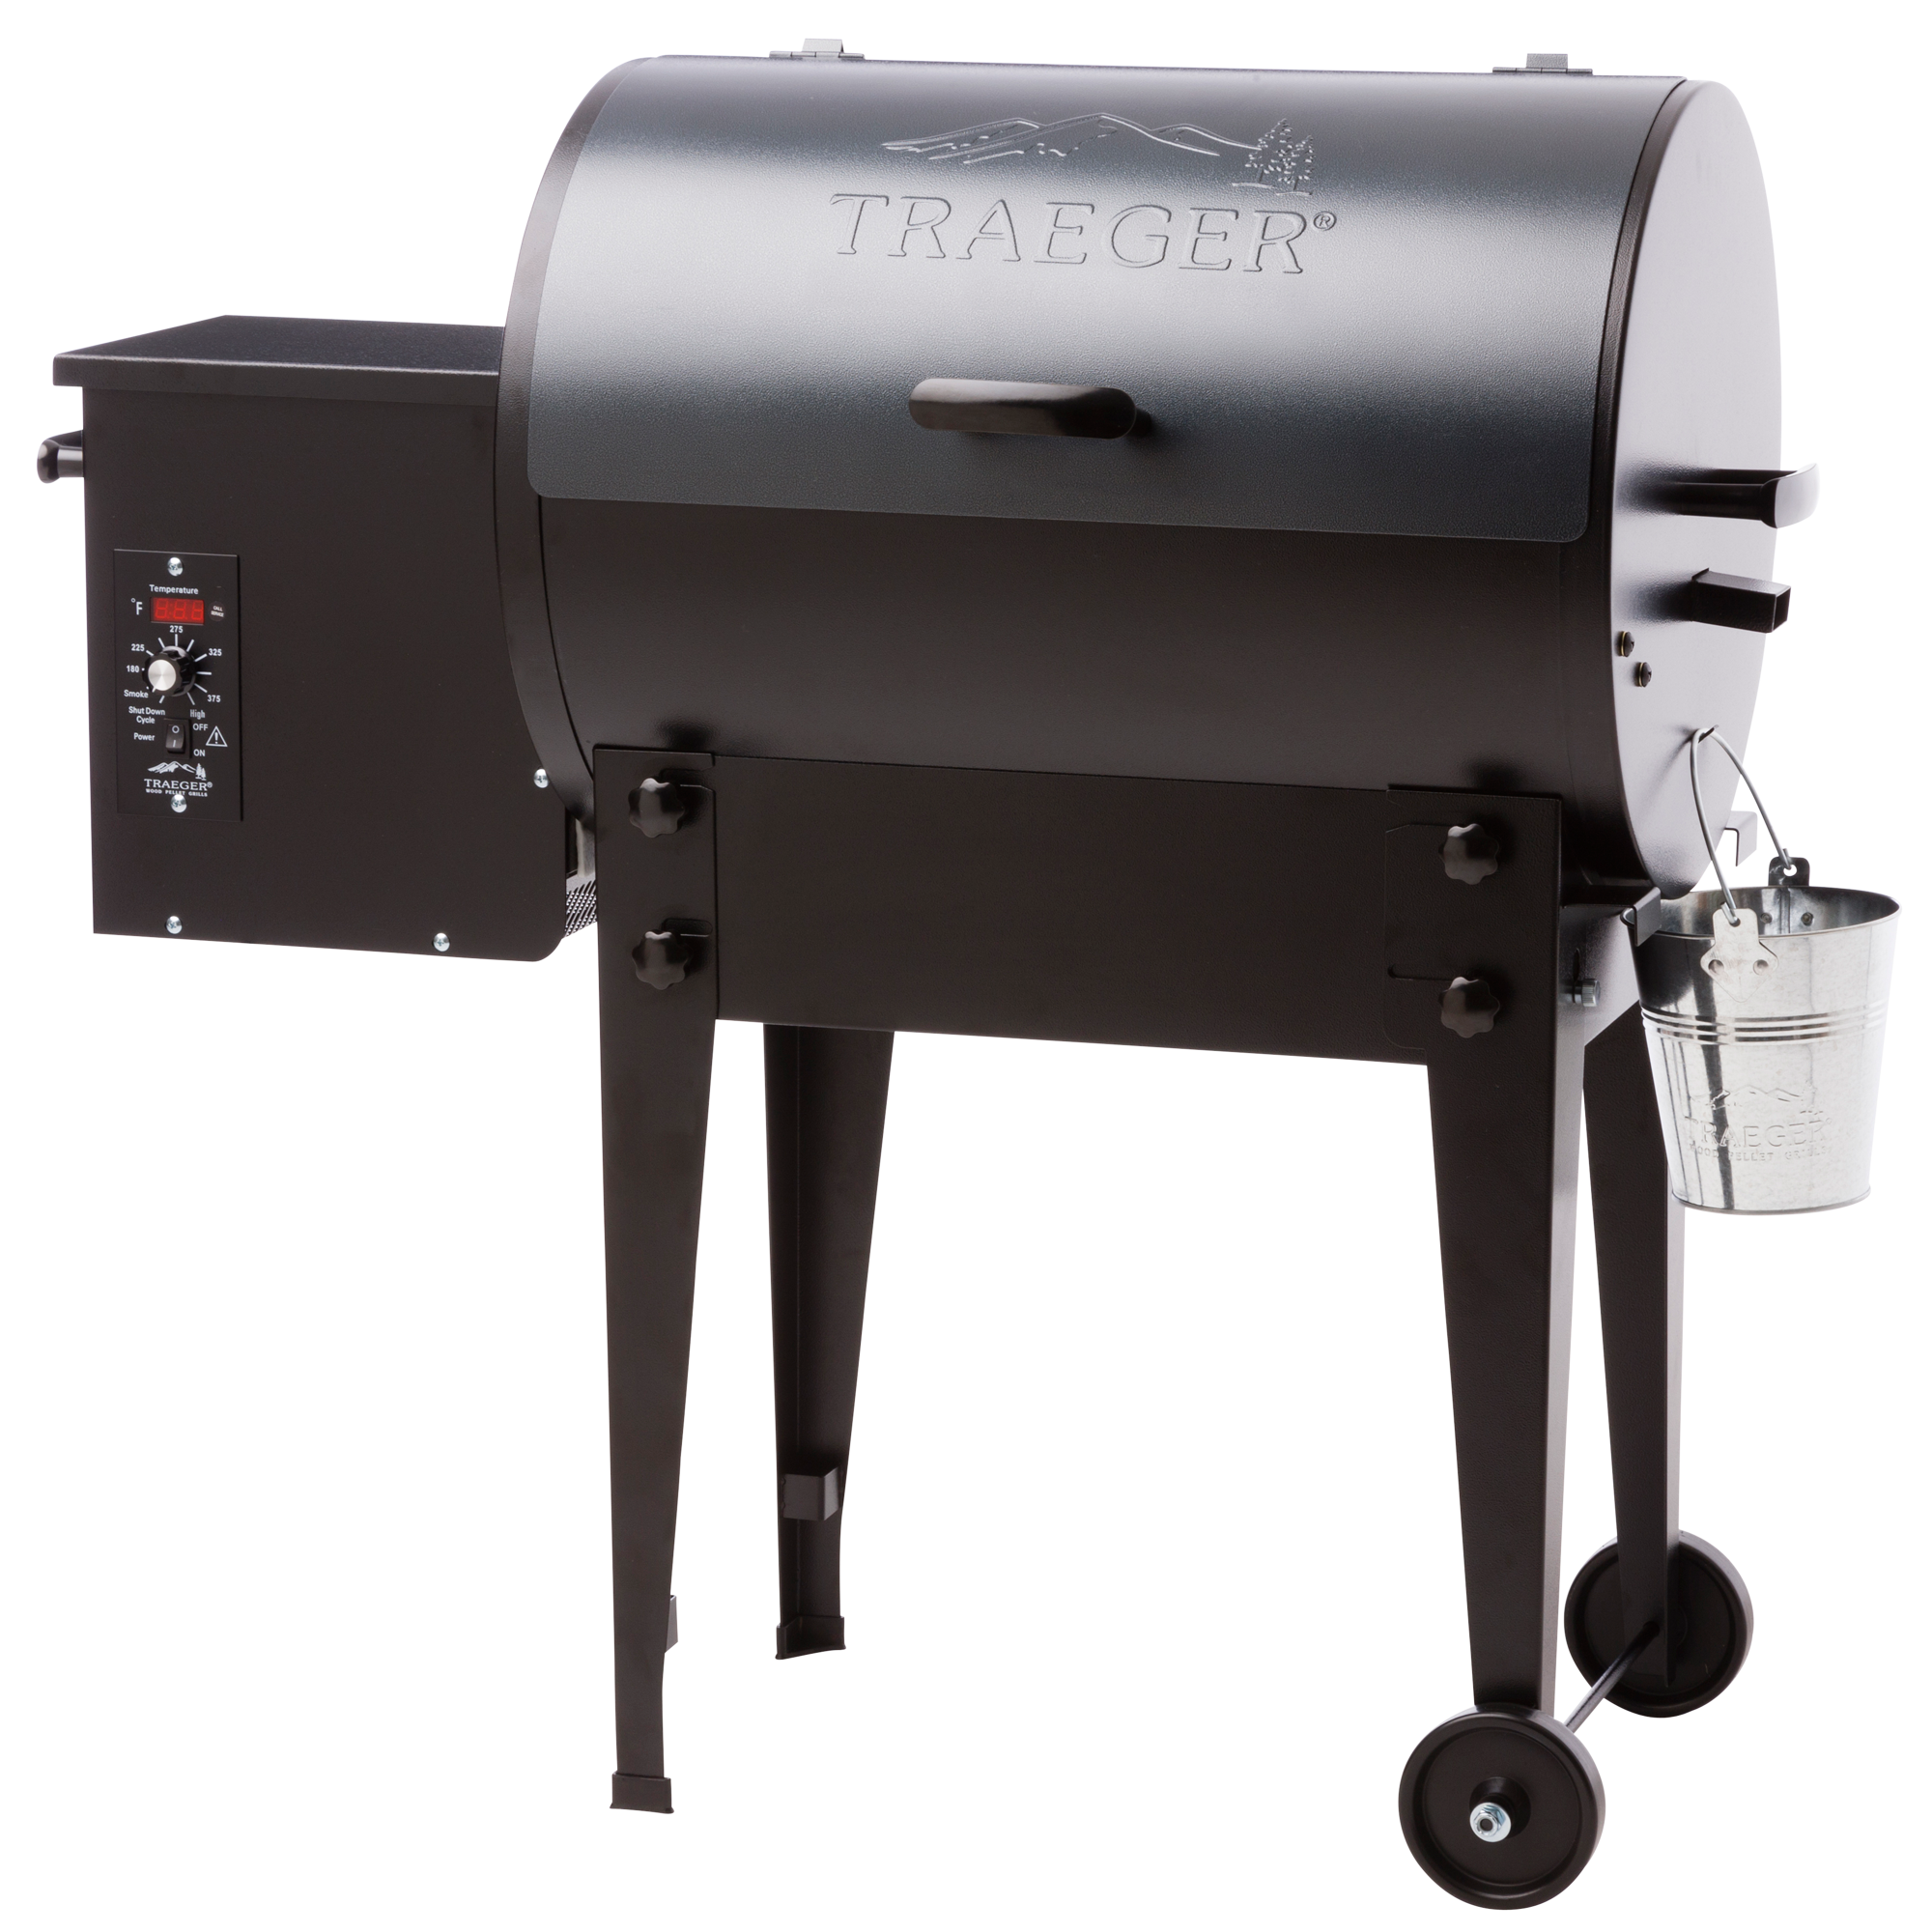 Tailgating Grilling Gear